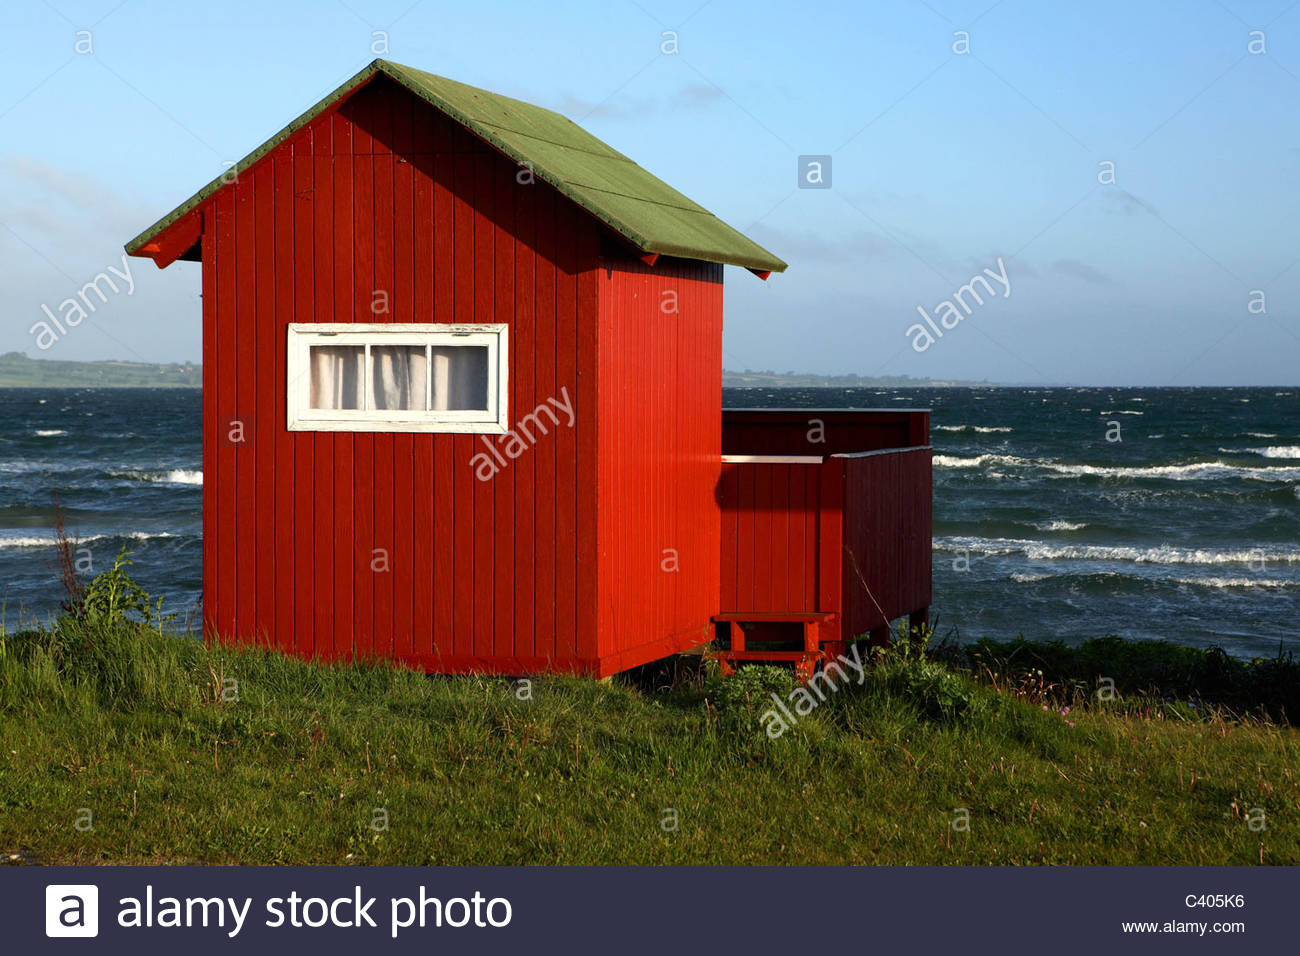 Aero Dänemark Danemark Aero Island Beach Hut Stock Photo 36883818 Alamy